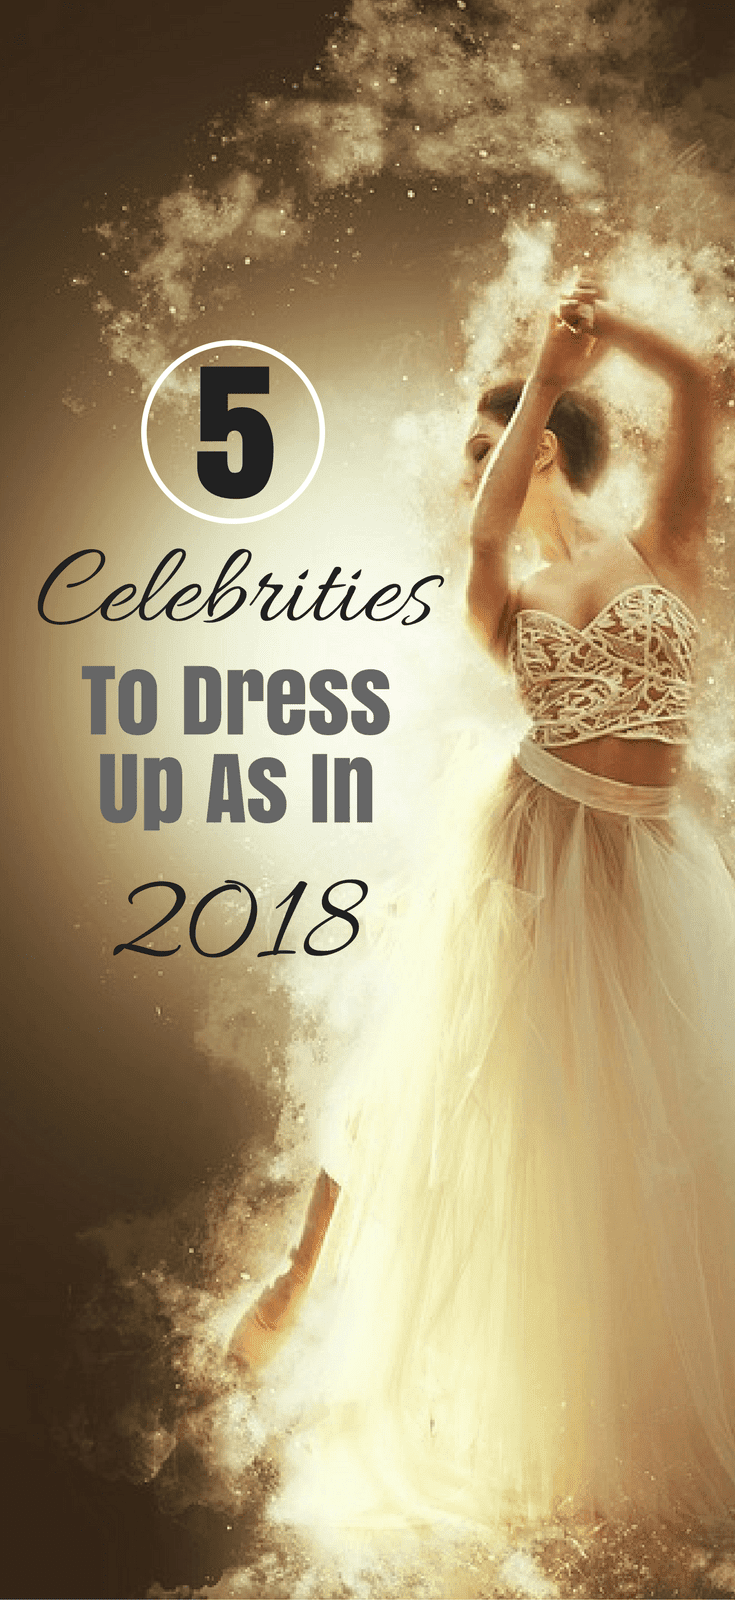 5 Celebrities To Dress Up As In 2018